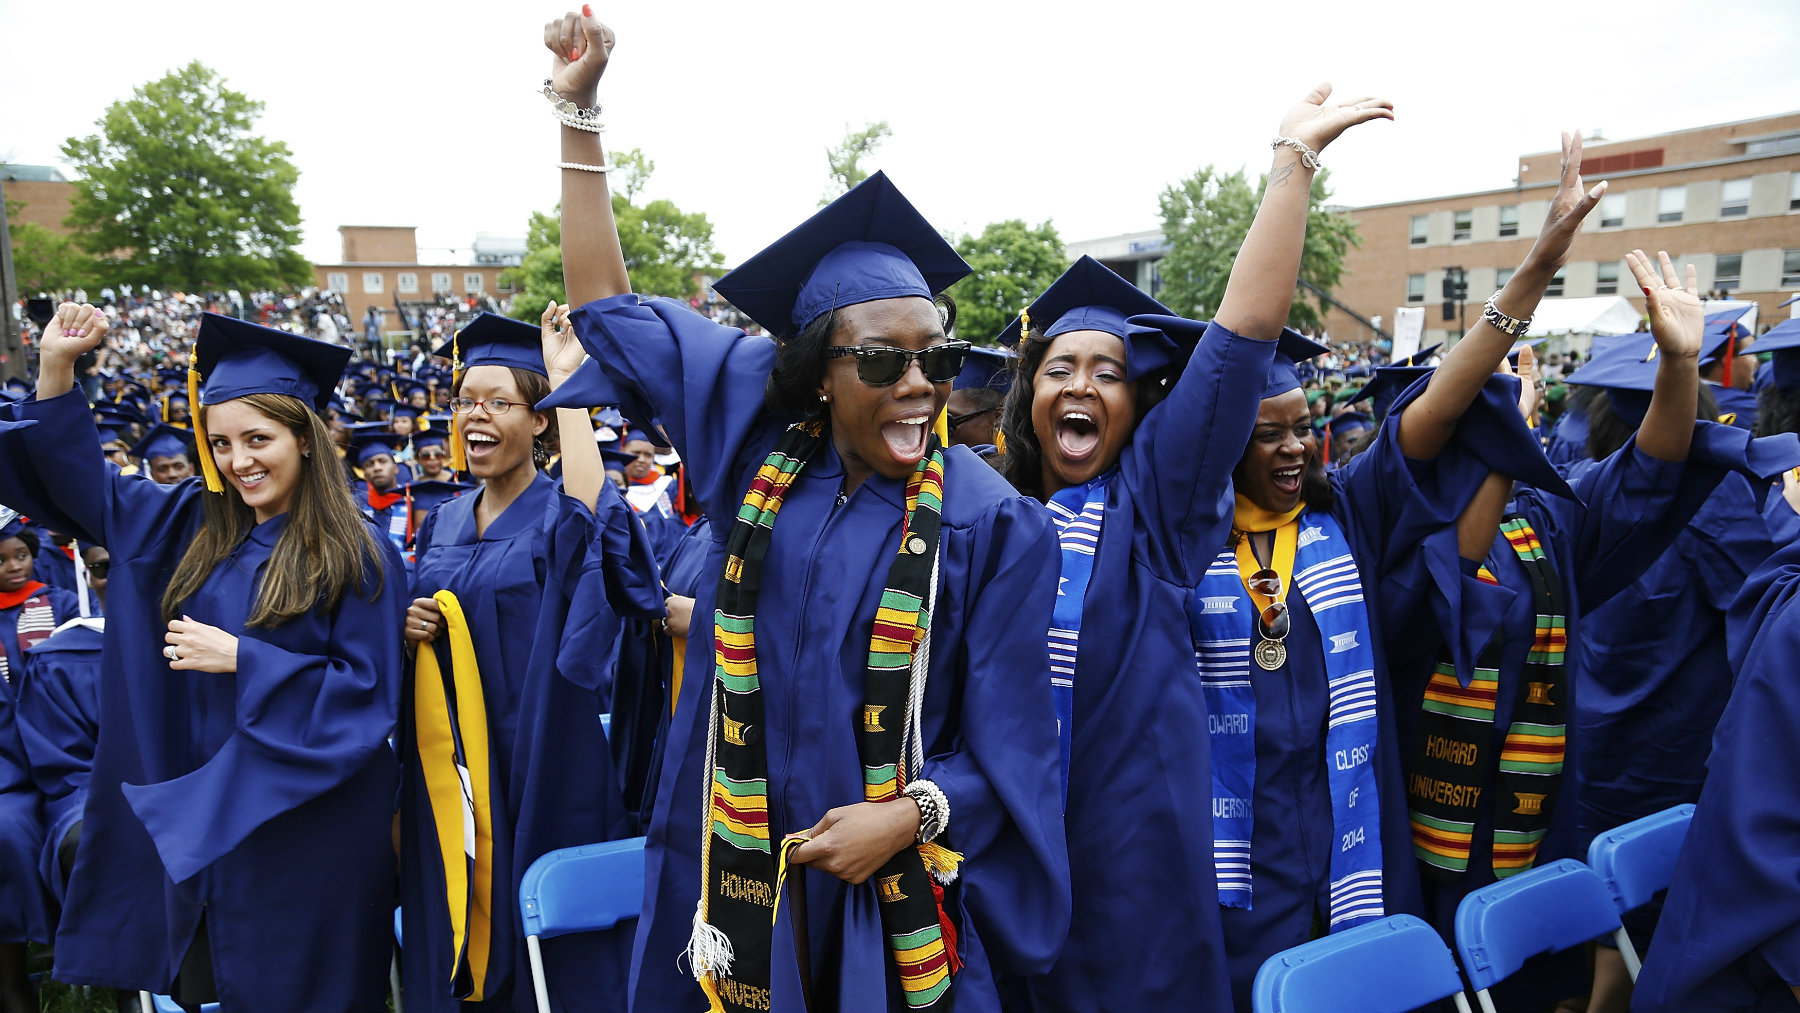 Graduates celebrate during the 2014 graduation ceremonies at Howard University in Washington, DC.